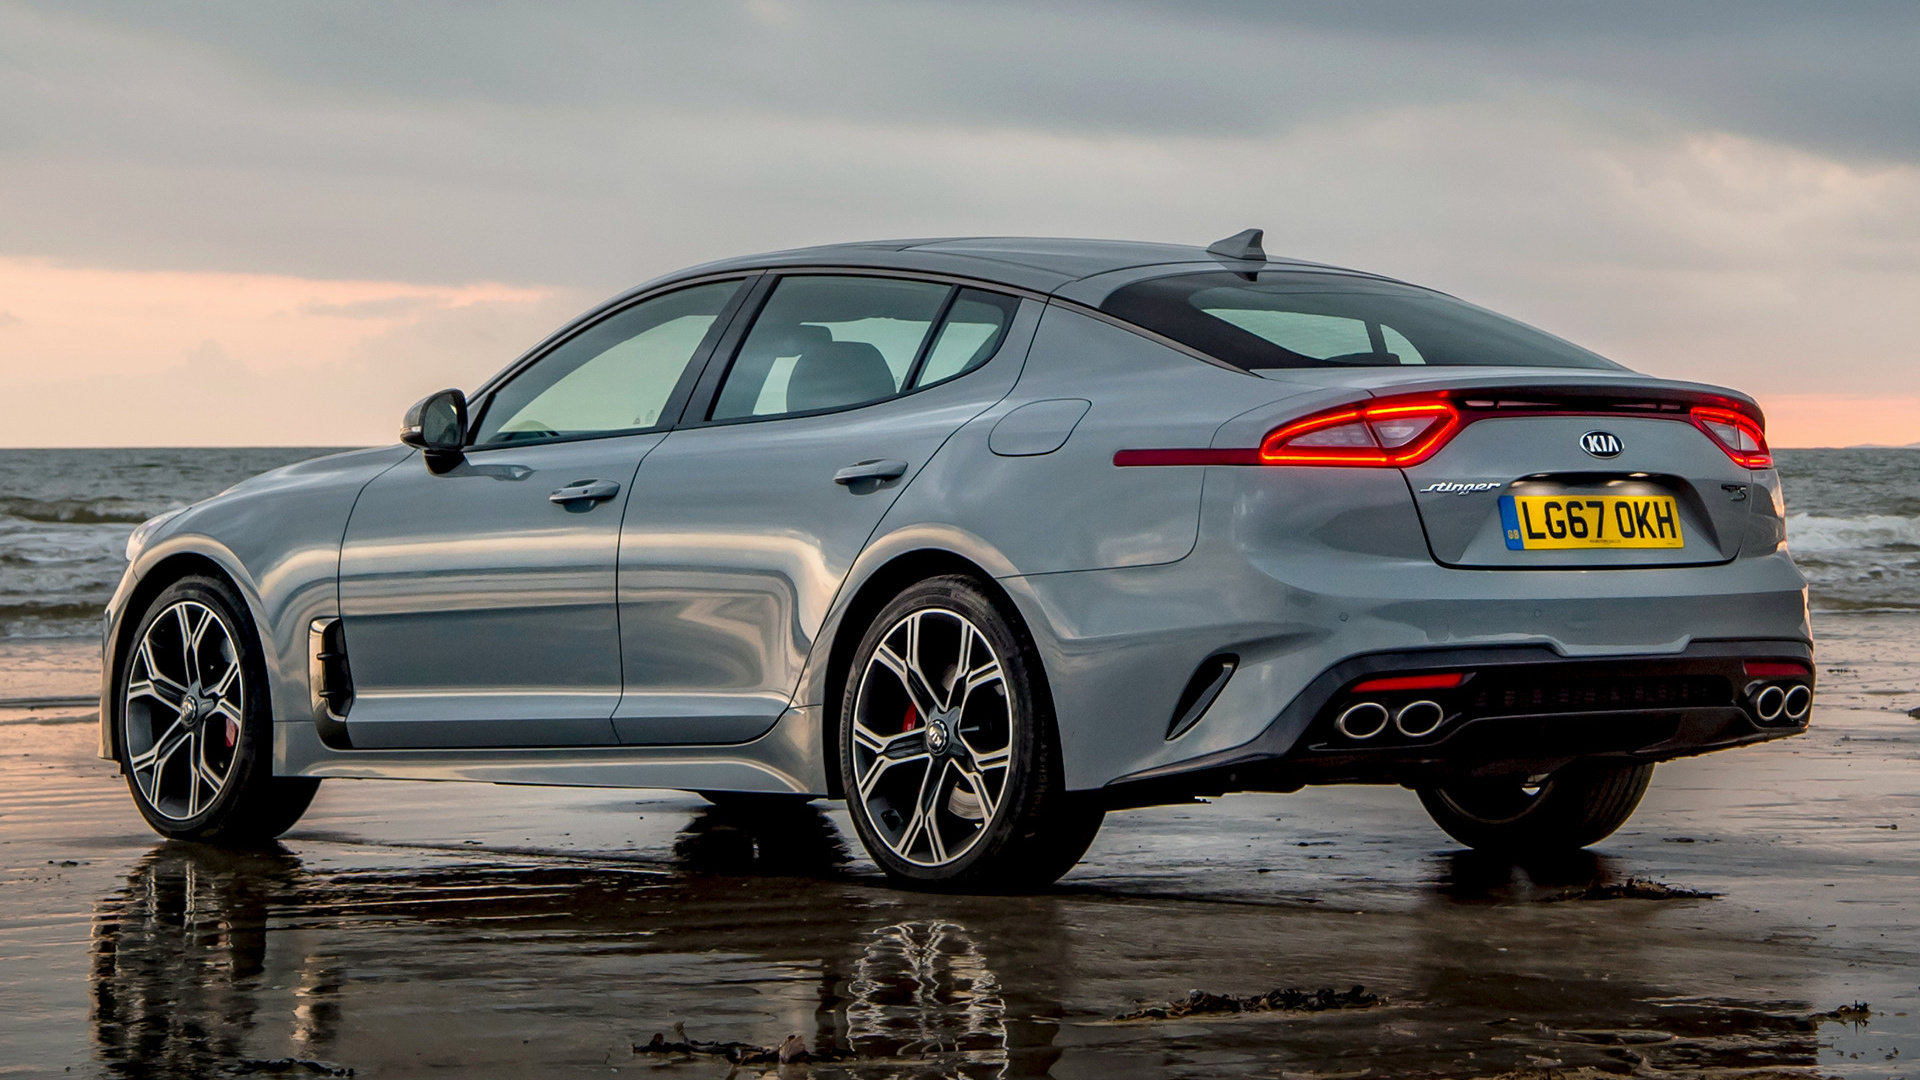 2017 Kia Stinger GT S (UK) - Wallpapers and HD Images ...